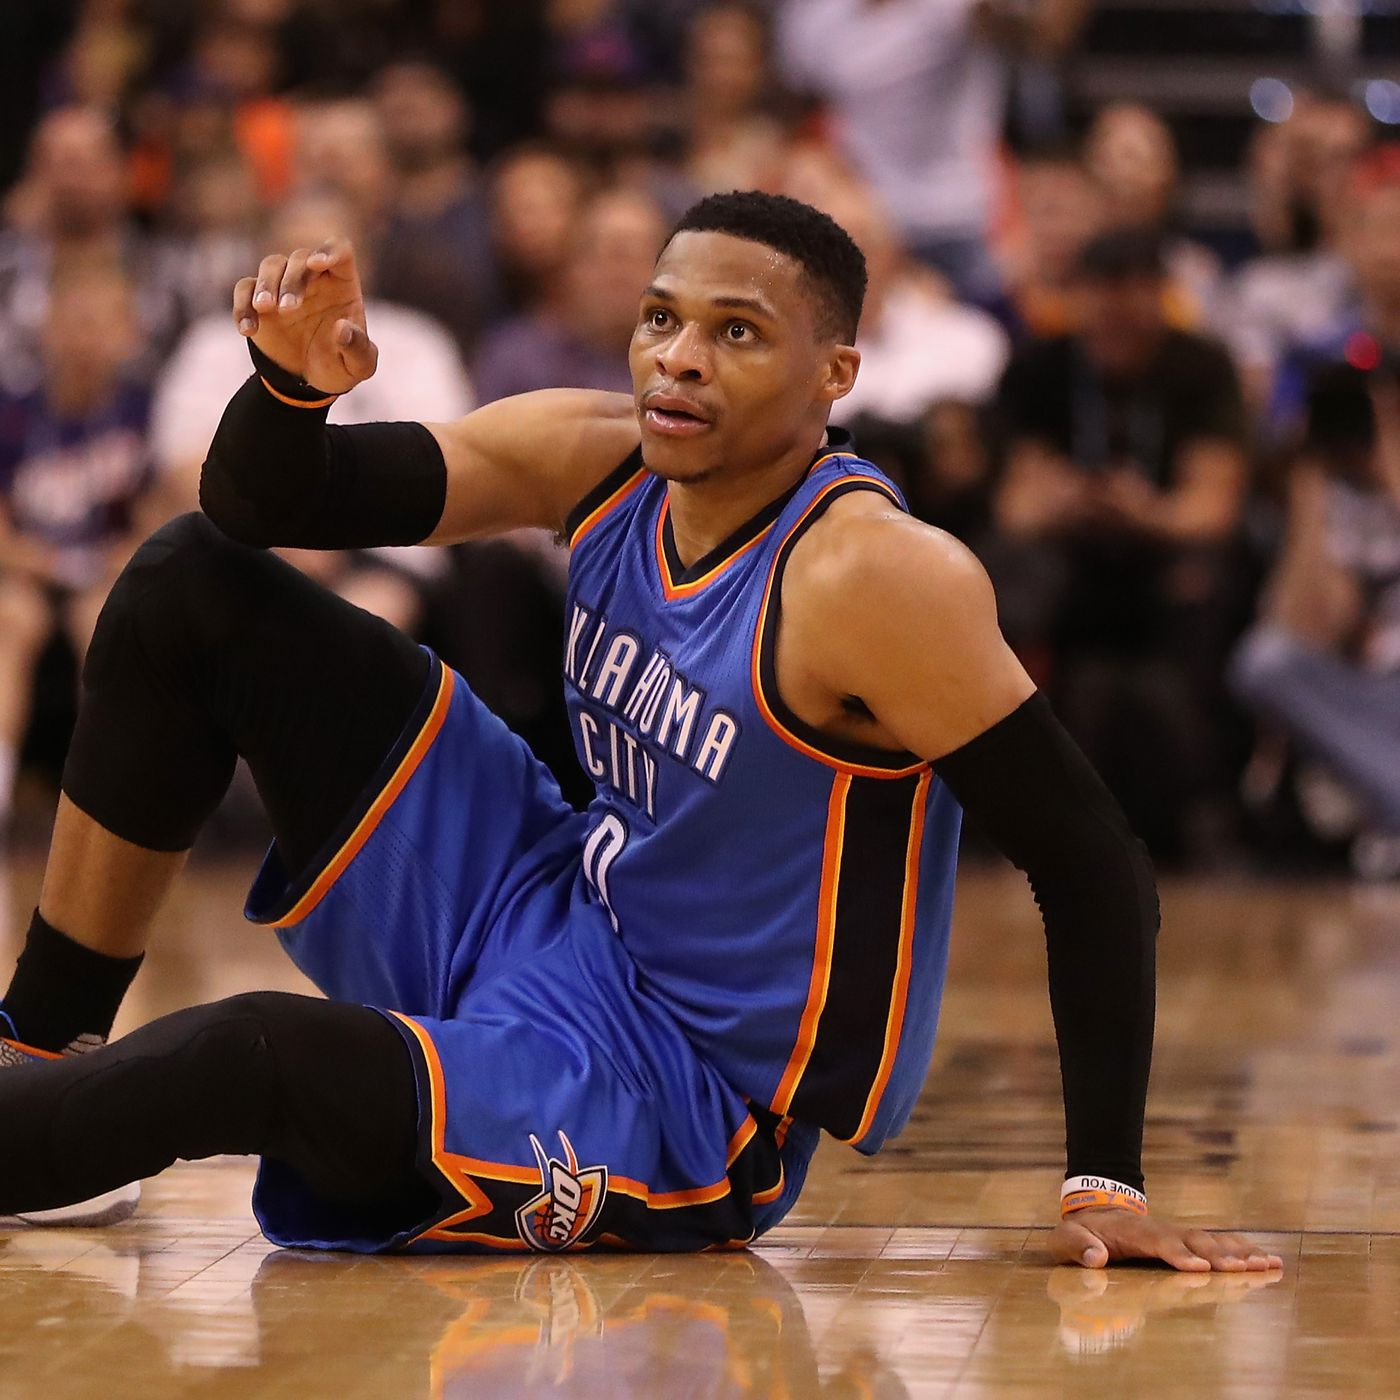 c54339a2b926 NBA scores 2017  Russell Westbrook can t force history - SBNation.com